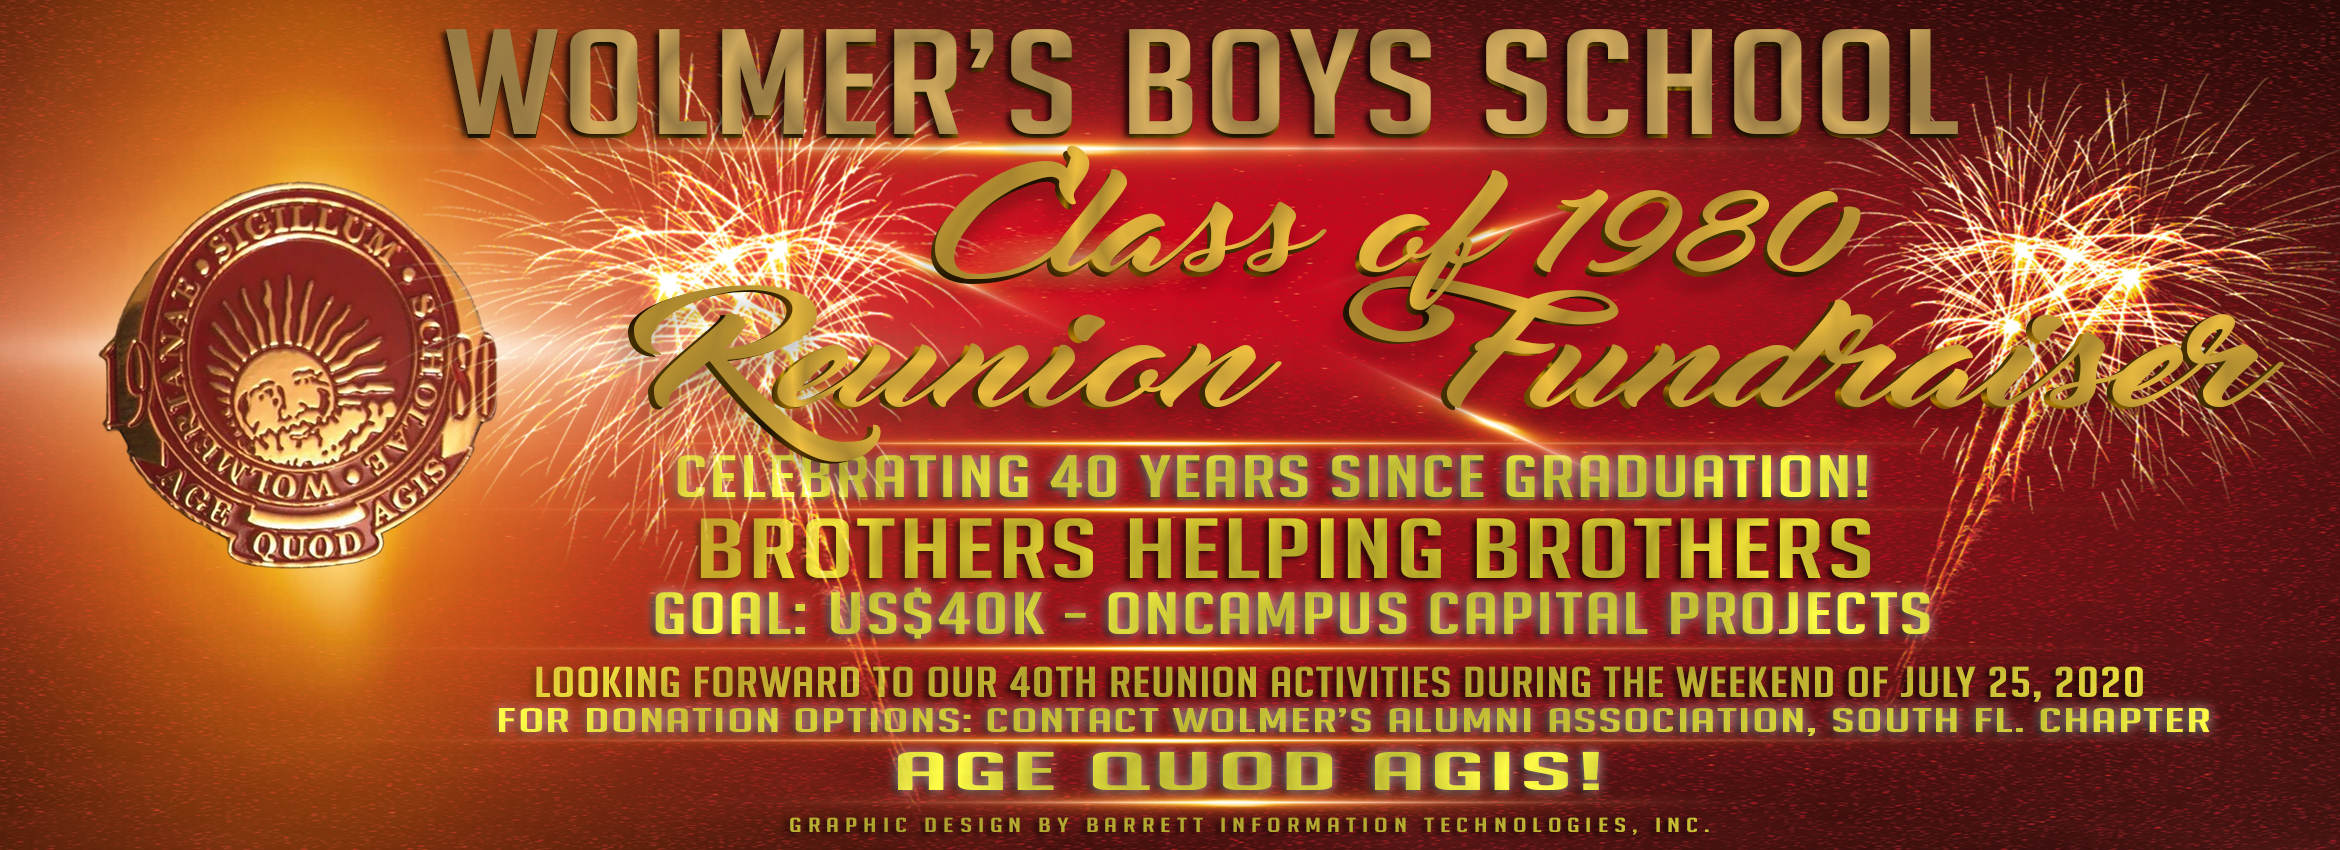 class-of-1980-reunion-fund-raiser